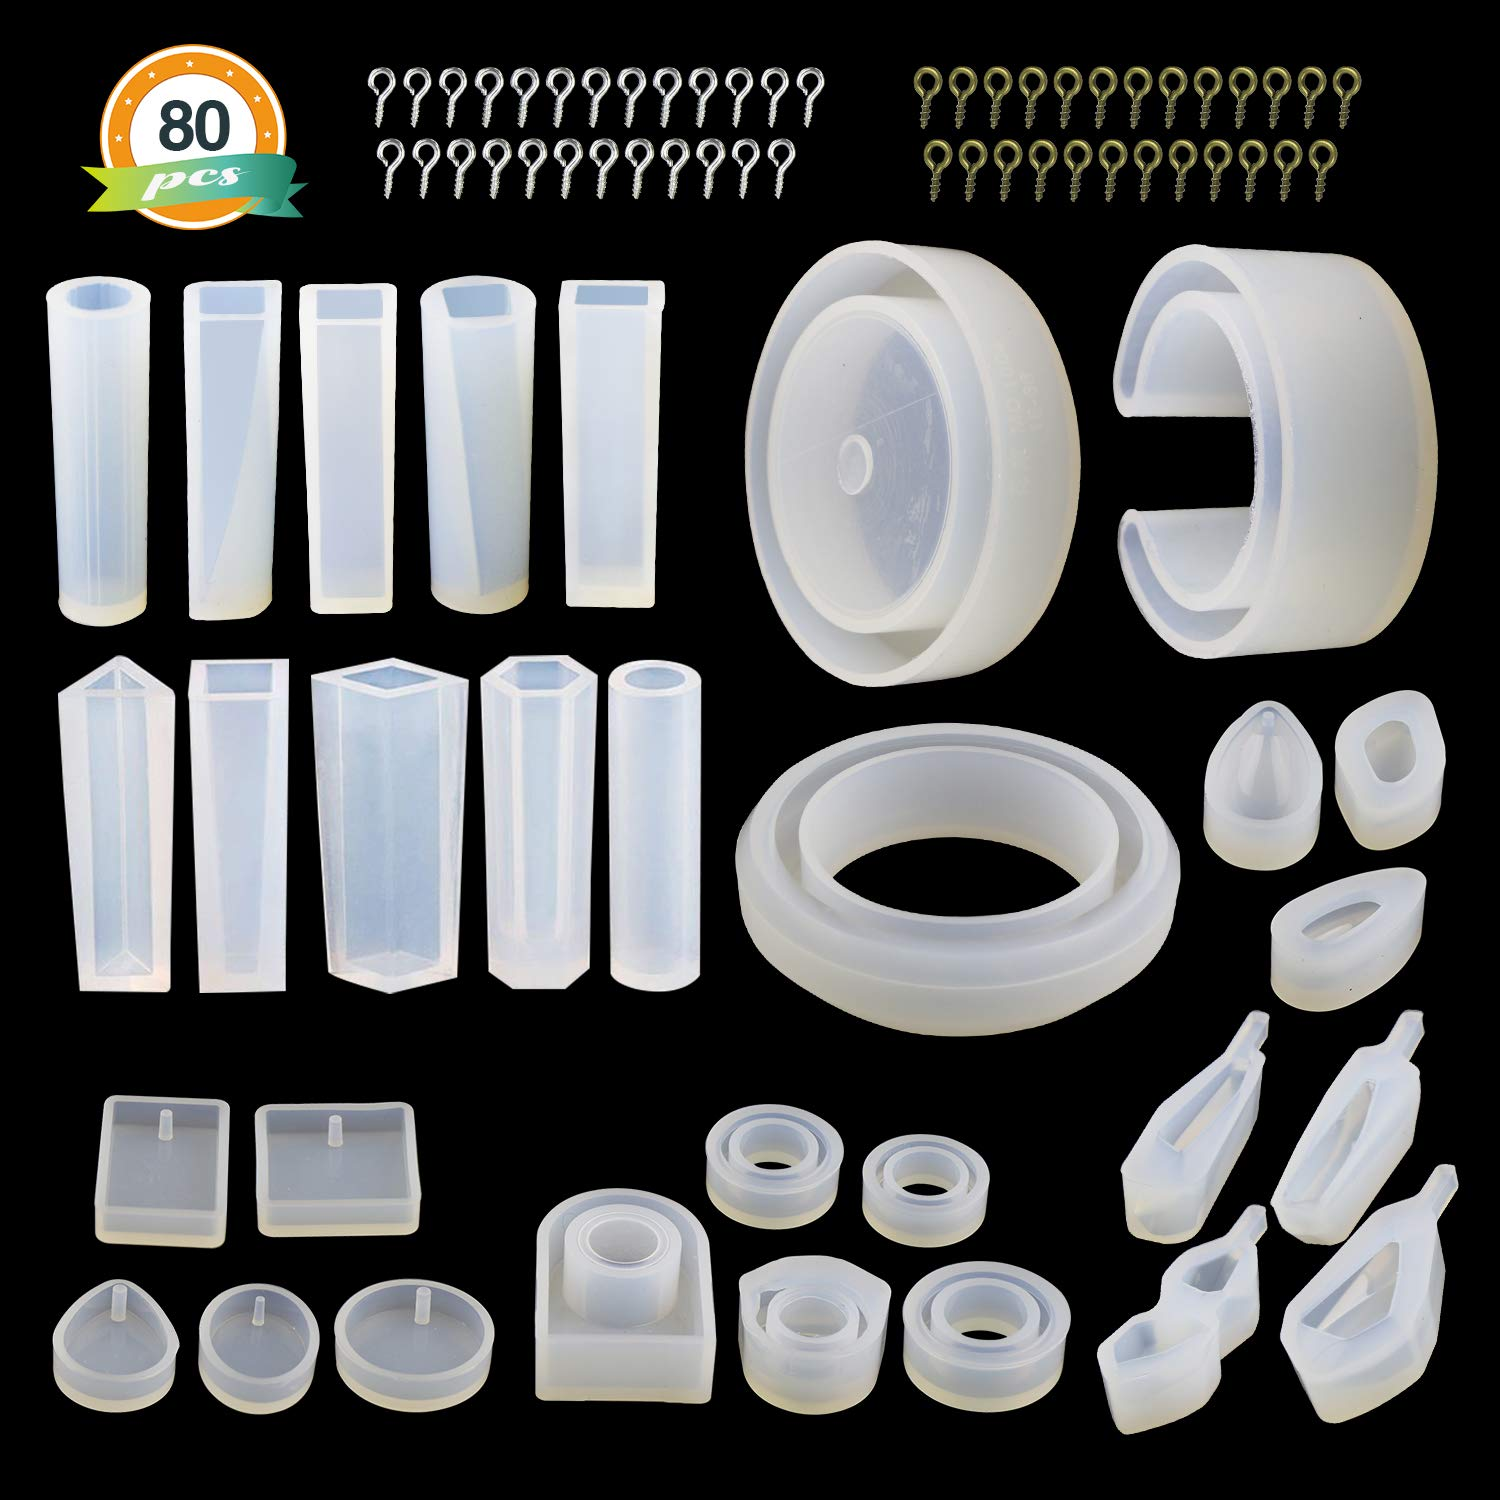 LET'S RESIN Resin Jewelry Molds,30pcs Silicone Jewelry Molds, Epoxy UV Resin Molds Including Resin Bangle Molds, Pendant Molds, Ring Molds, and 50pcs Screw Eye Pins 713lujLLUnL